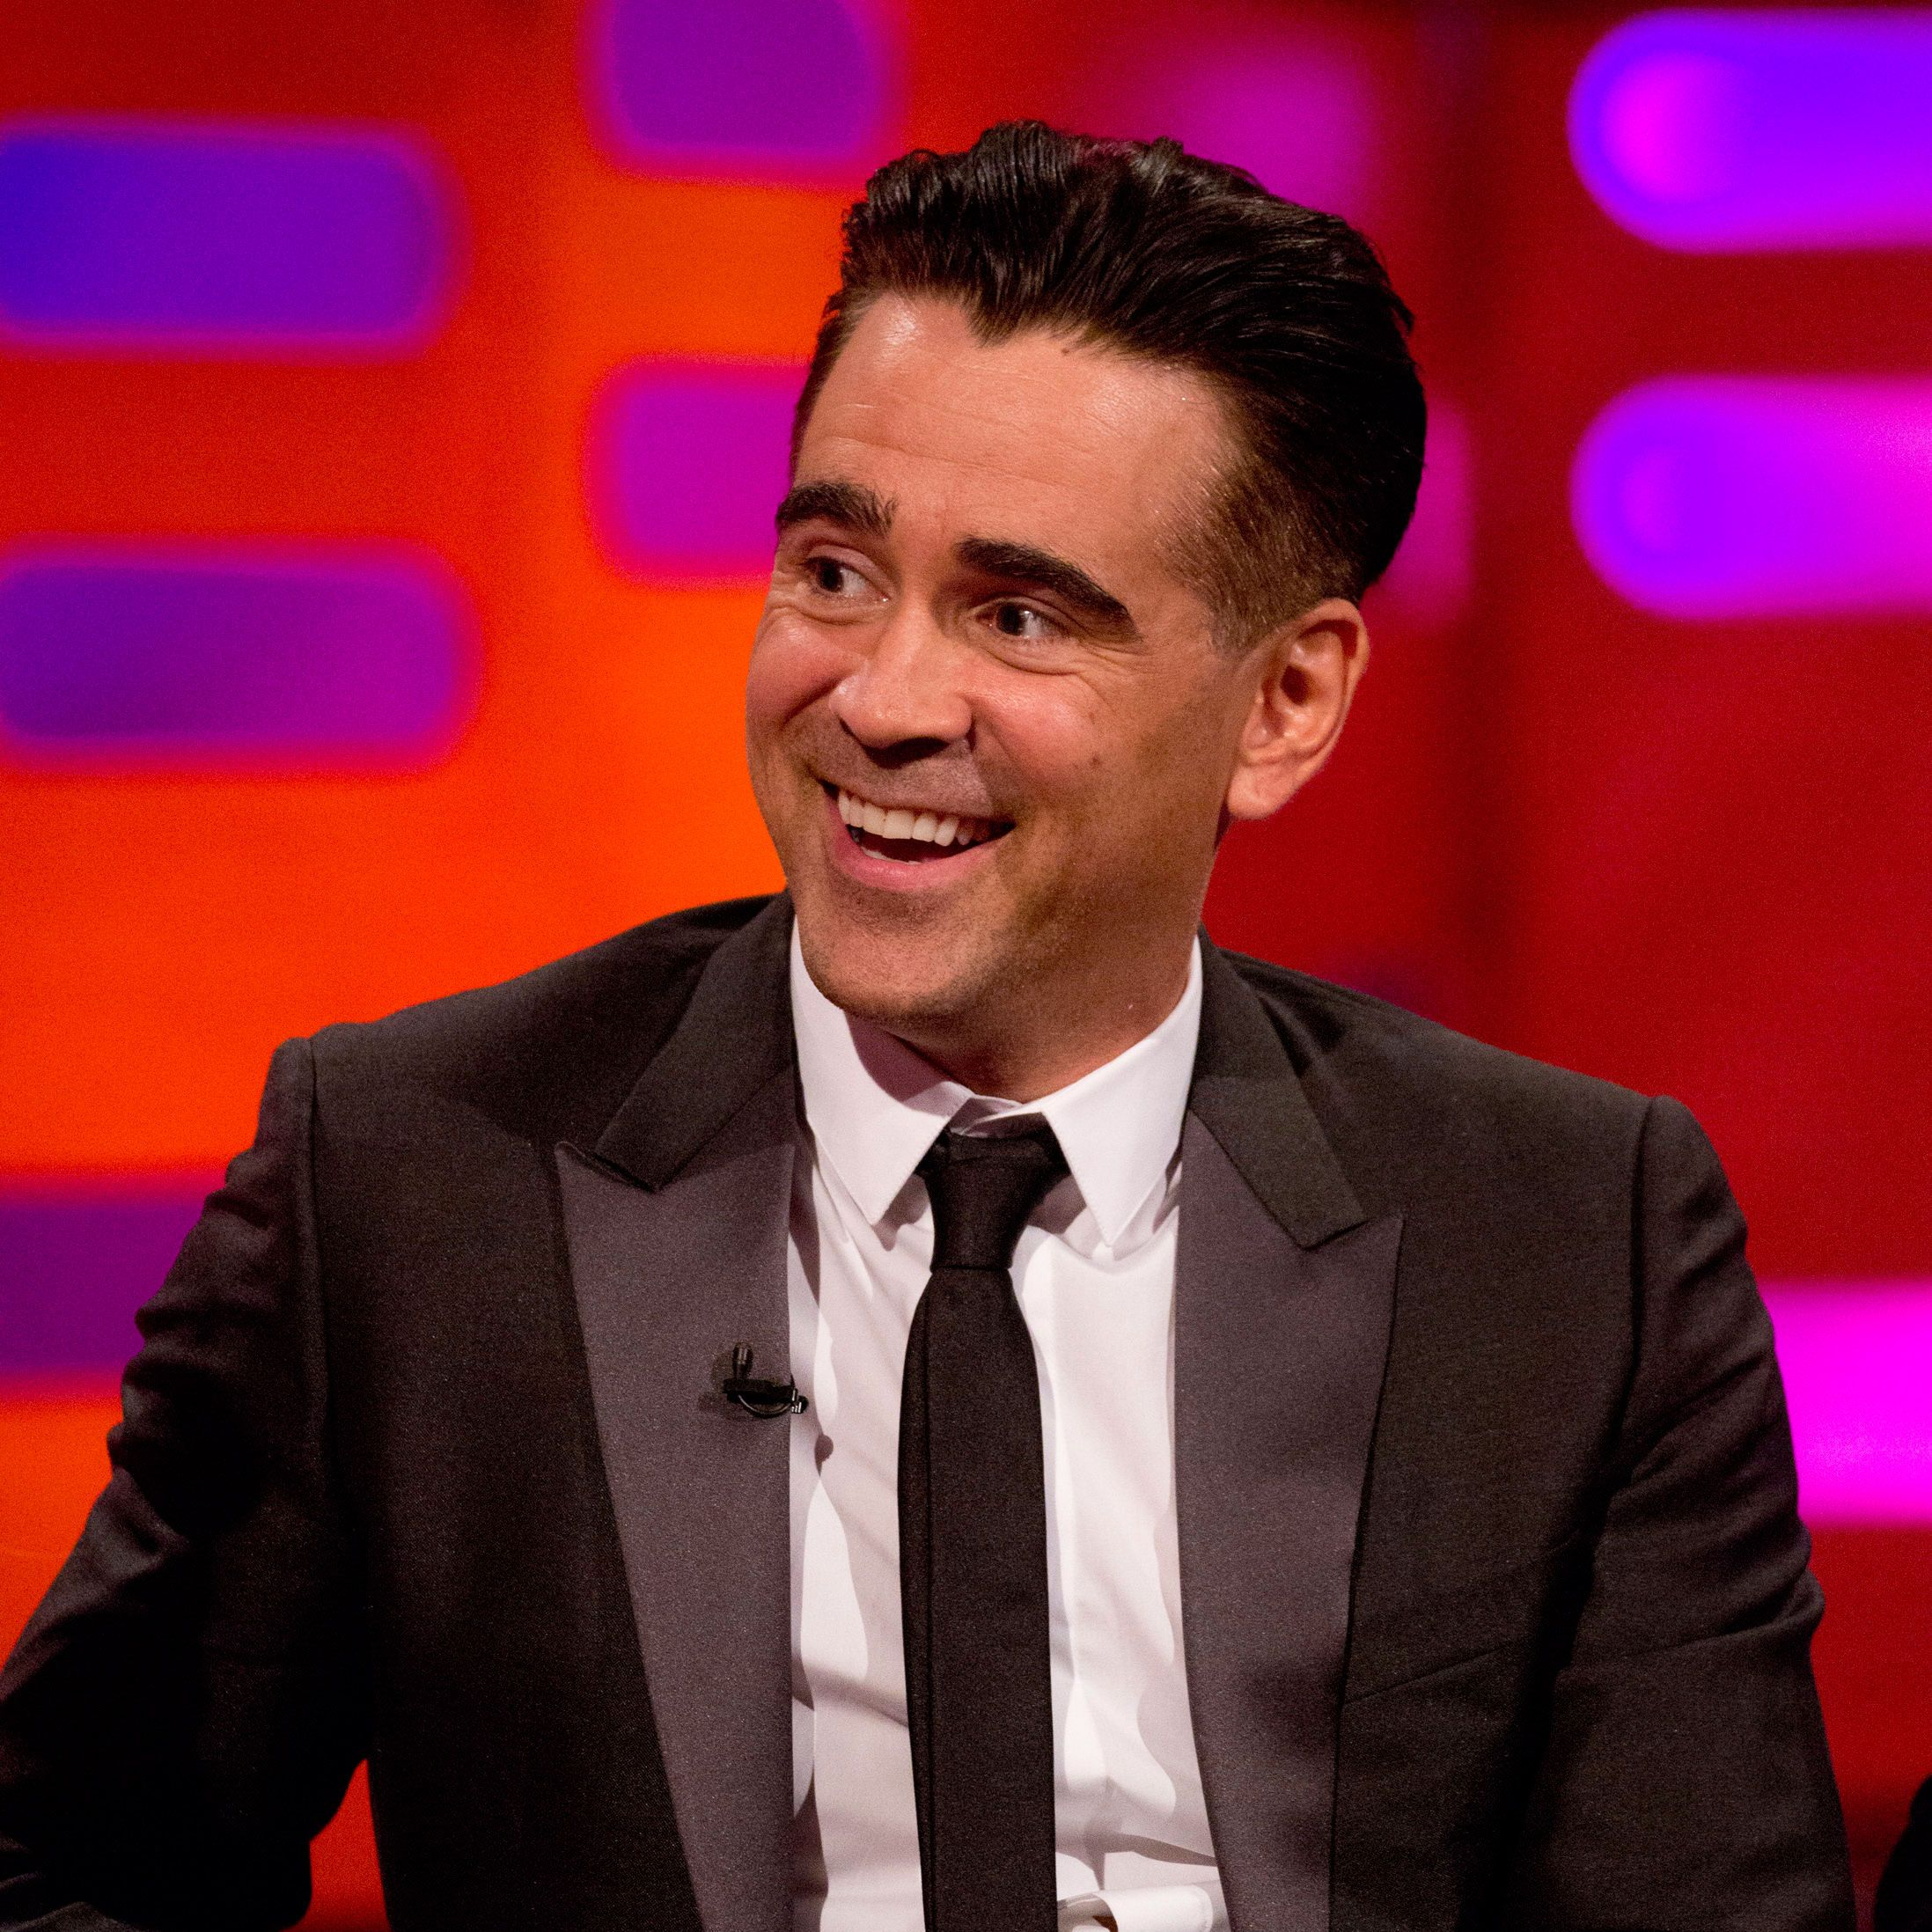 Colin Farrell will star in survival thriller series The North Water on BBC Two